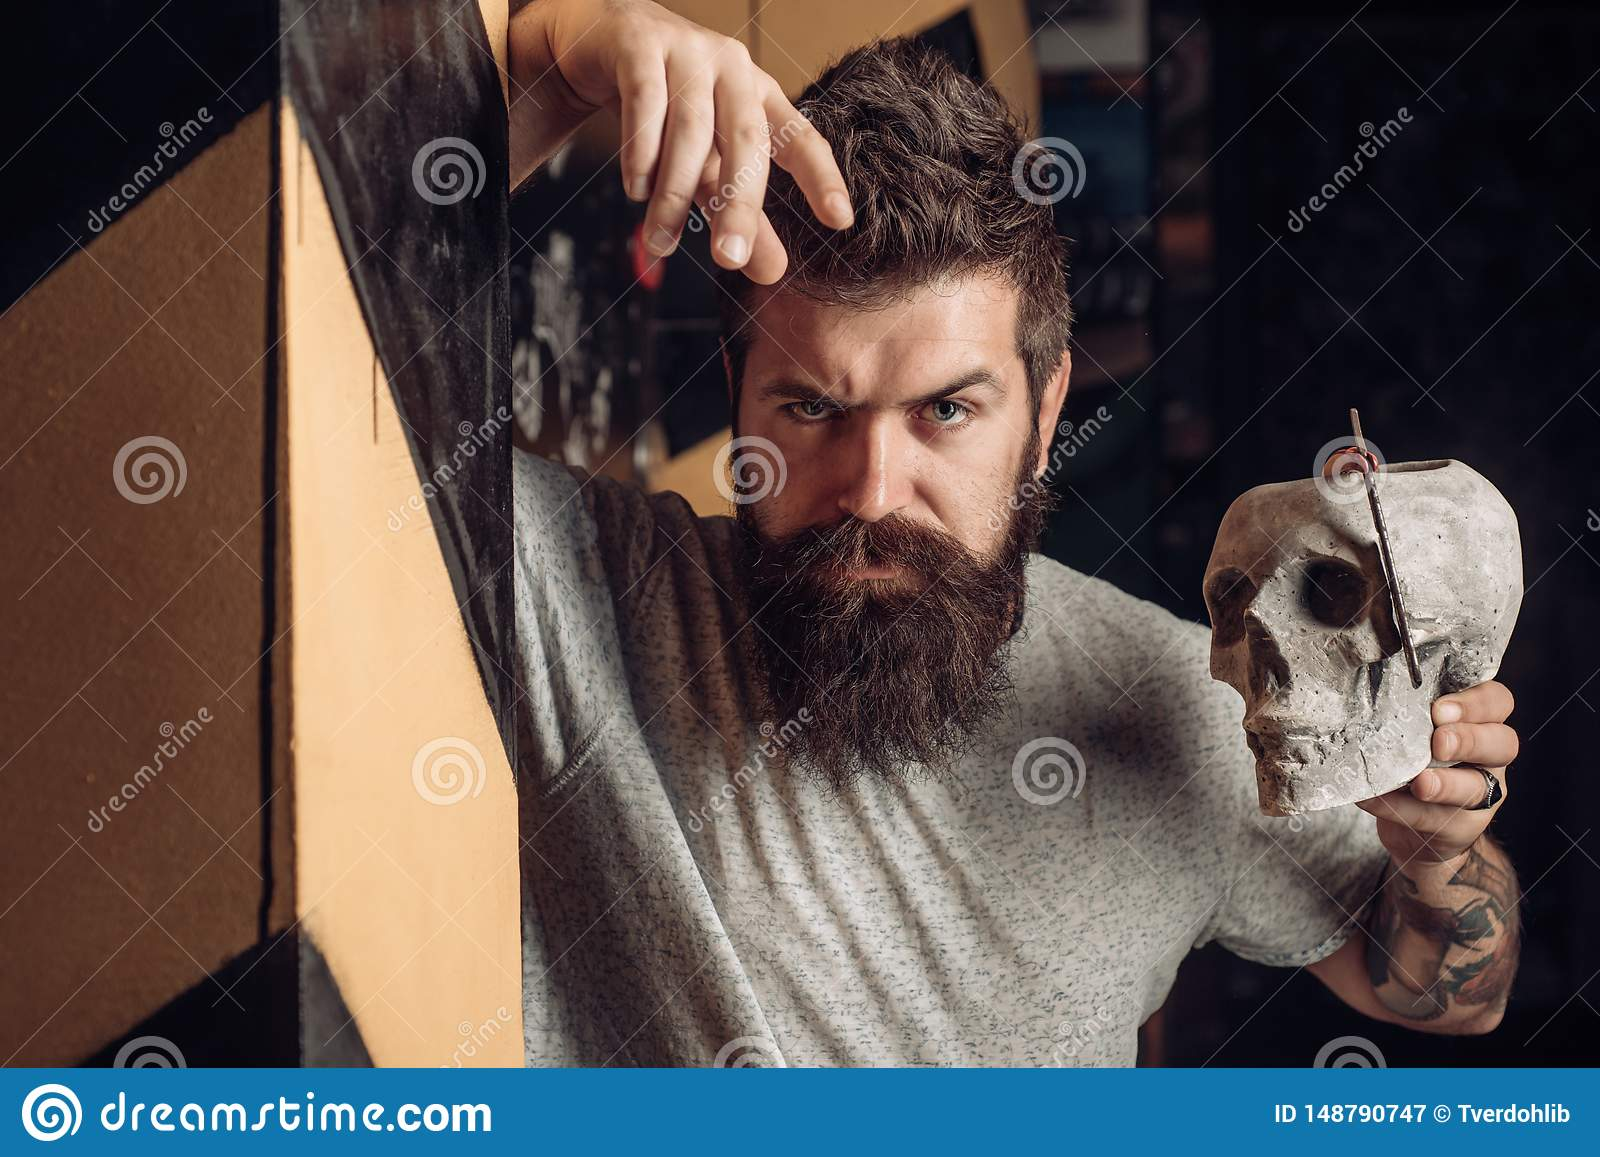 Male client getting haircut by hairdresser. Trims. Hair style and hair stylist. Beard care. Barber scissors and straight